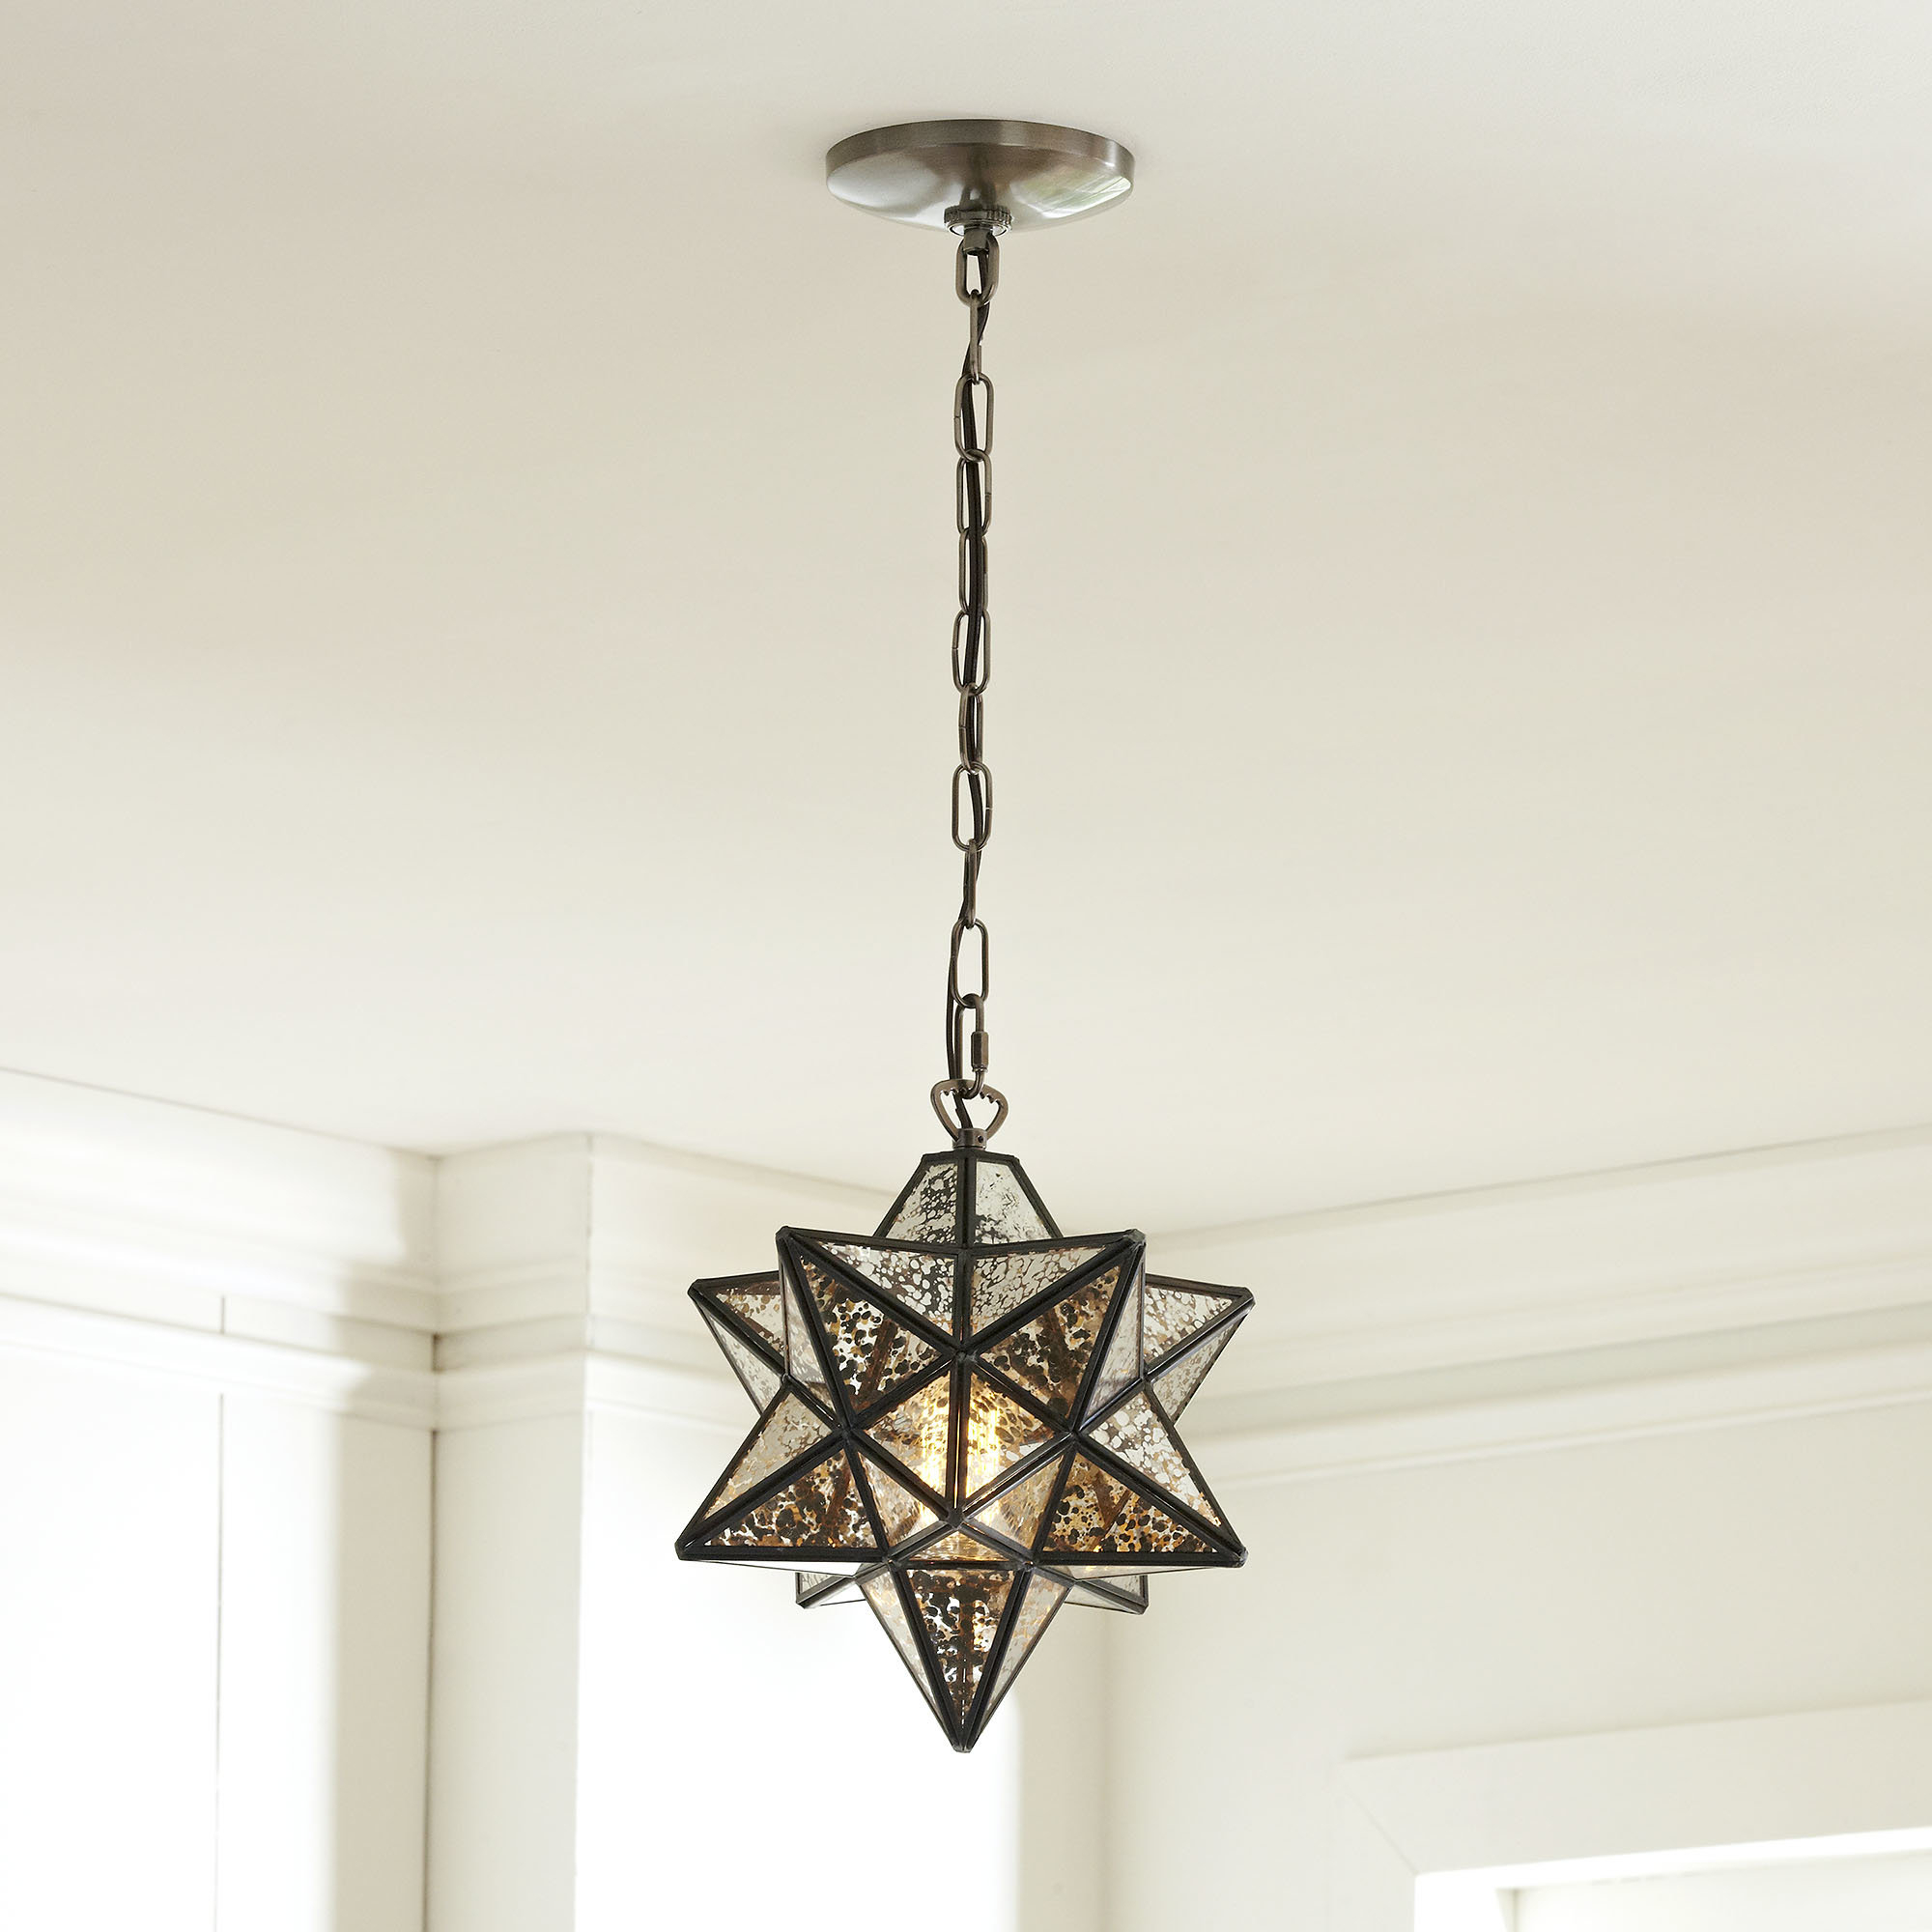 1-Light Single Star Pendant throughout Popular 1-Light Single Star Pendants